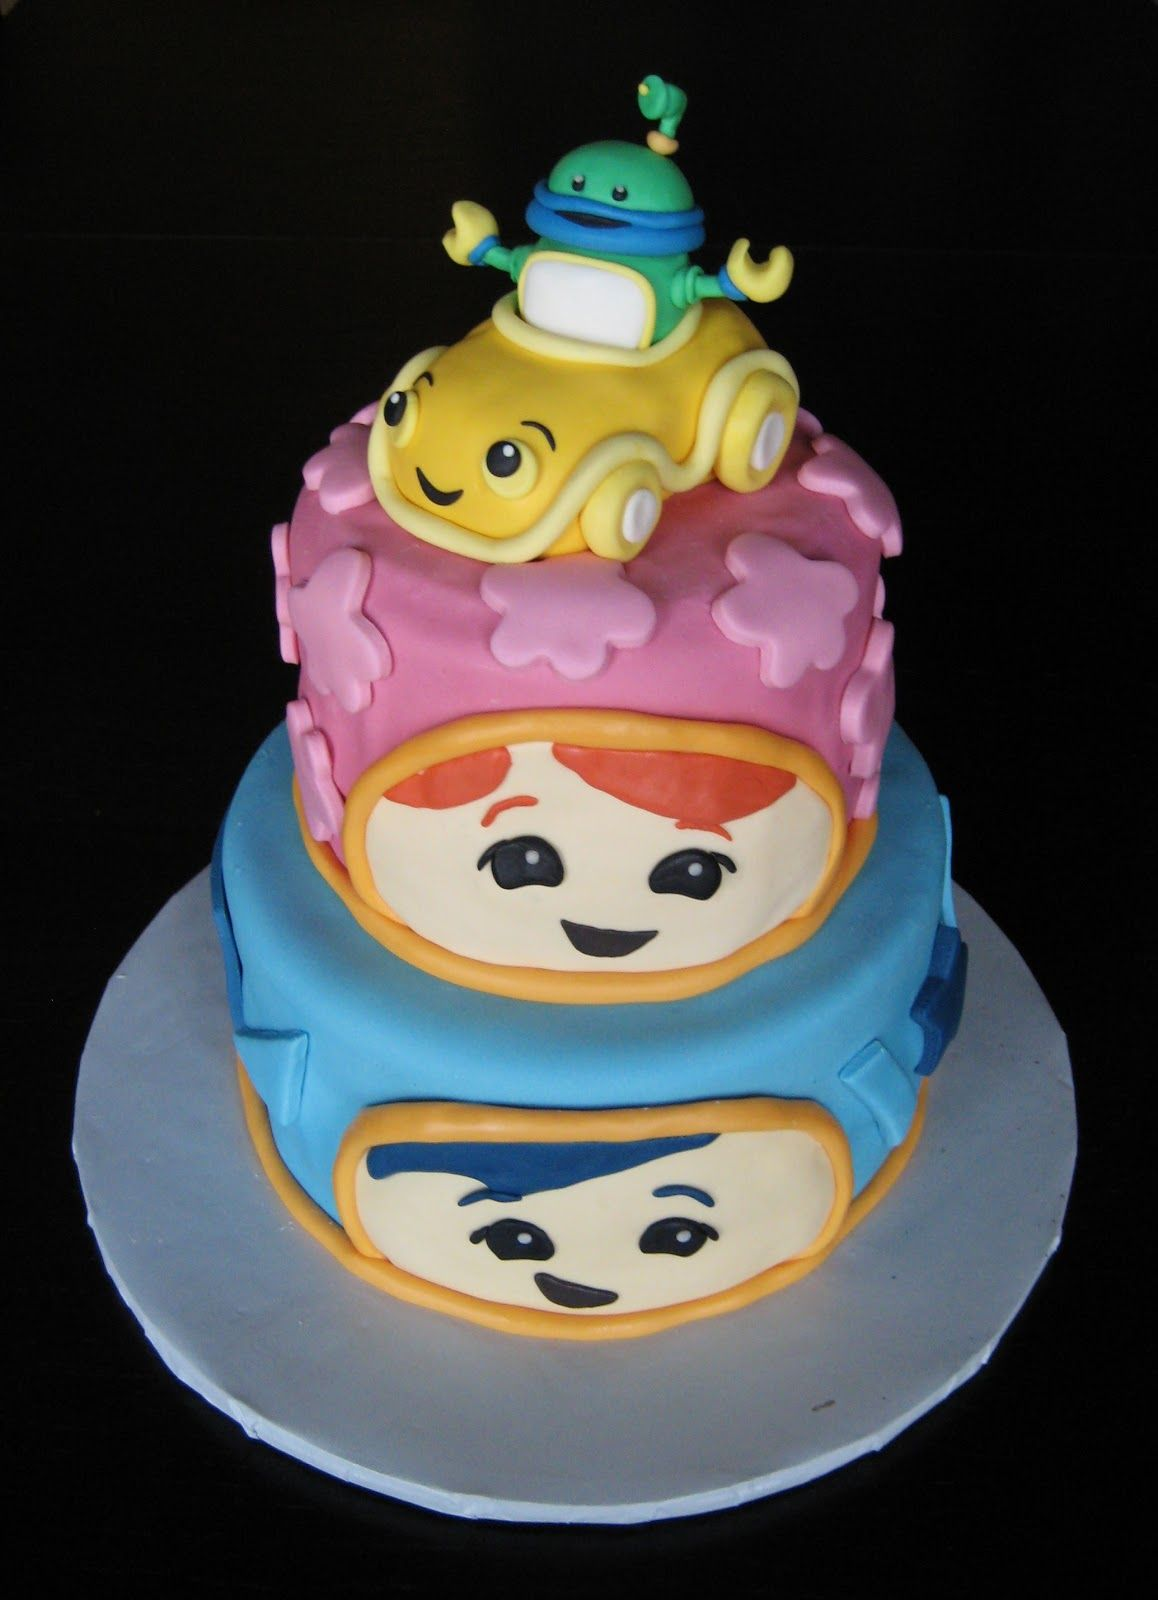 Remarkable Team Umizoomi Cake With Images Cake Birthday Cake Toppers Personalised Birthday Cards Arneslily Jamesorg